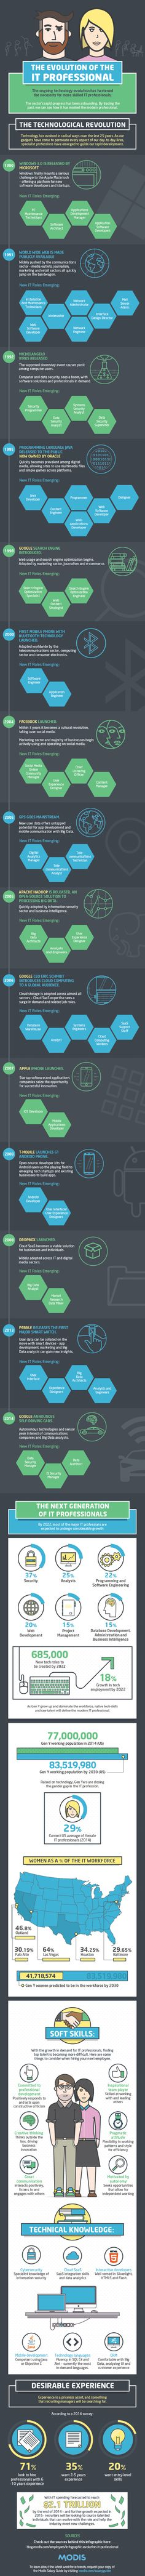 72 best Infographics images on Pinterest | Info graphics, Computer ...